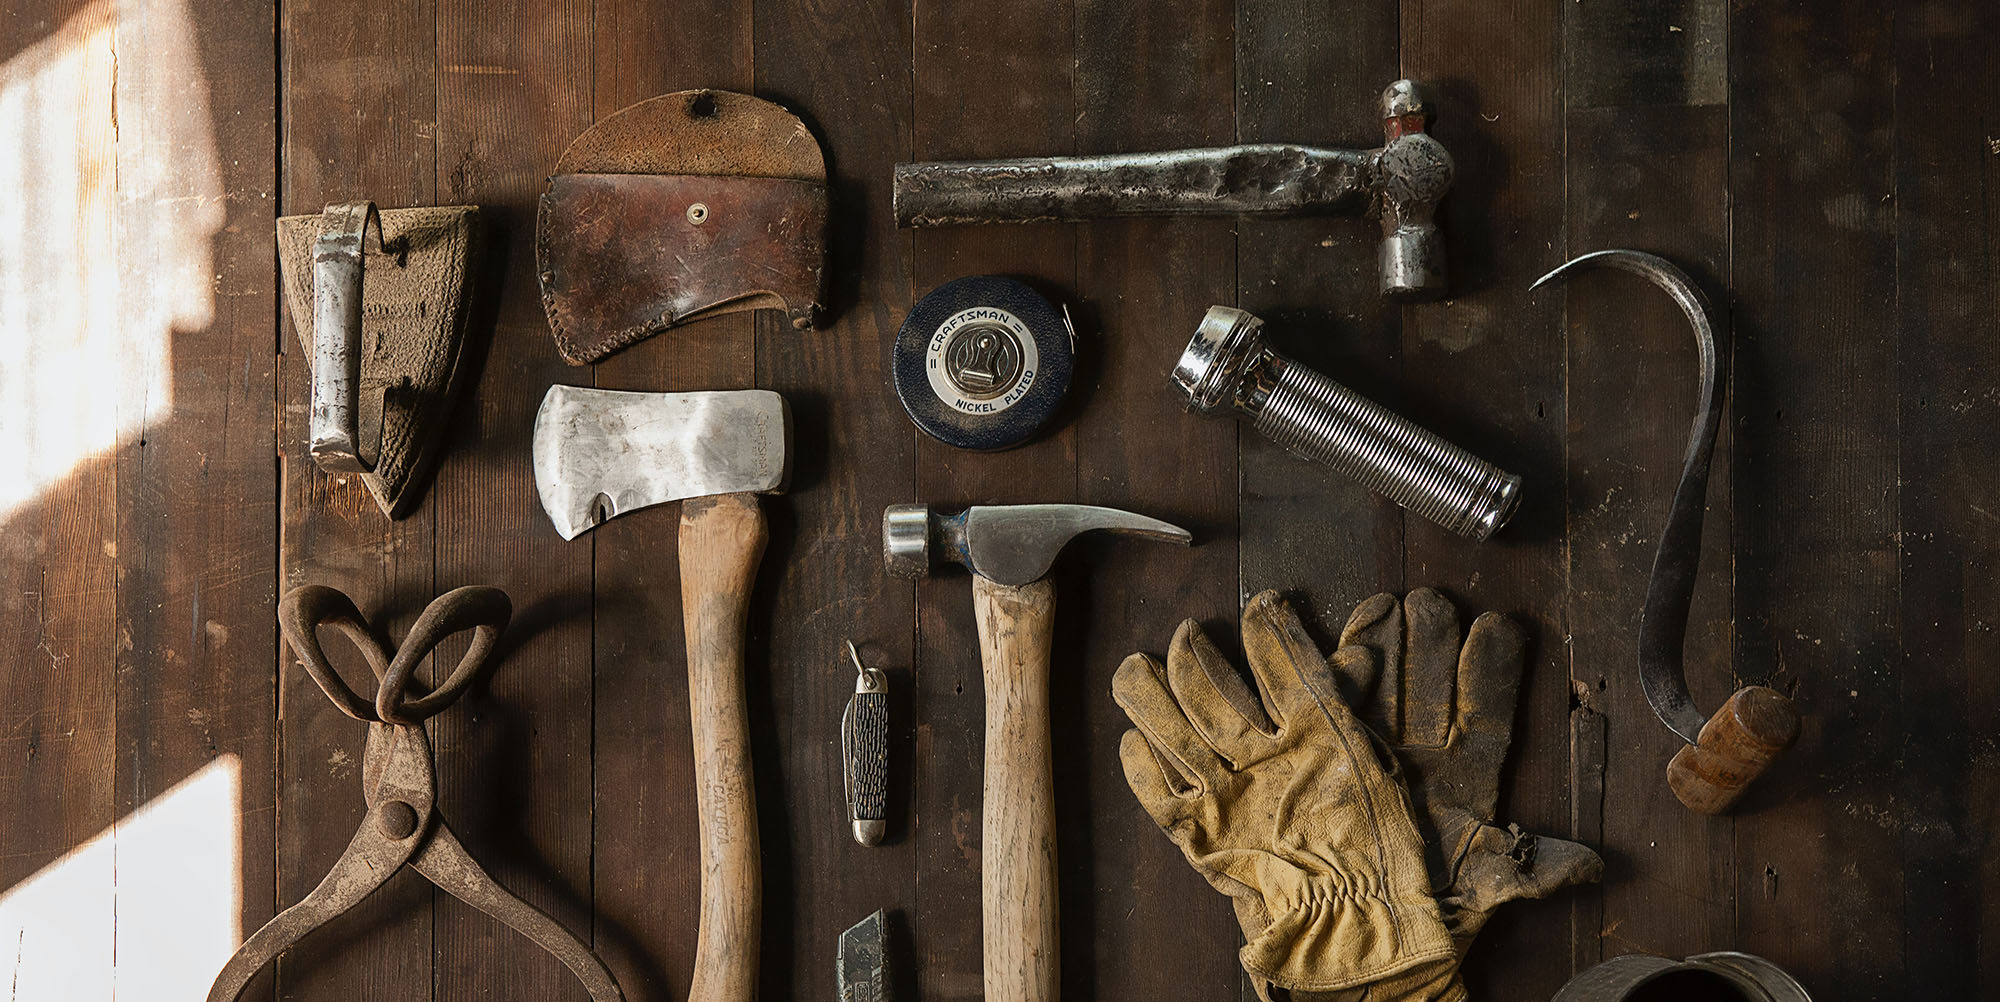 Images of tools